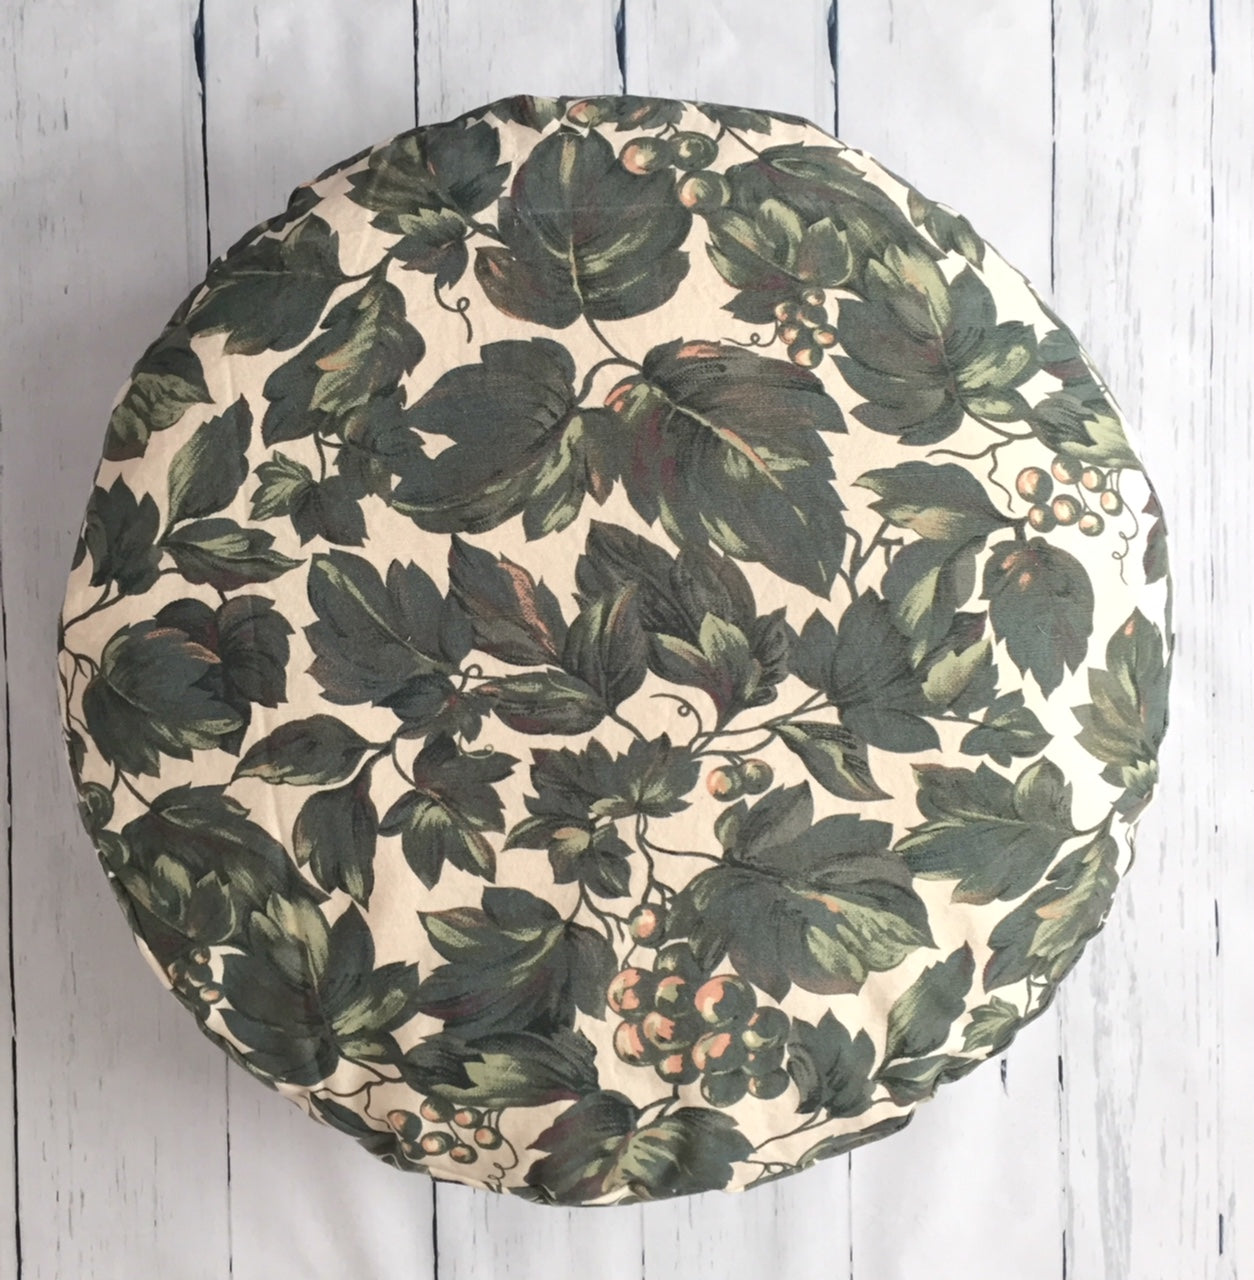 grape-vines-round-floor-pouf-front-hilary-hope